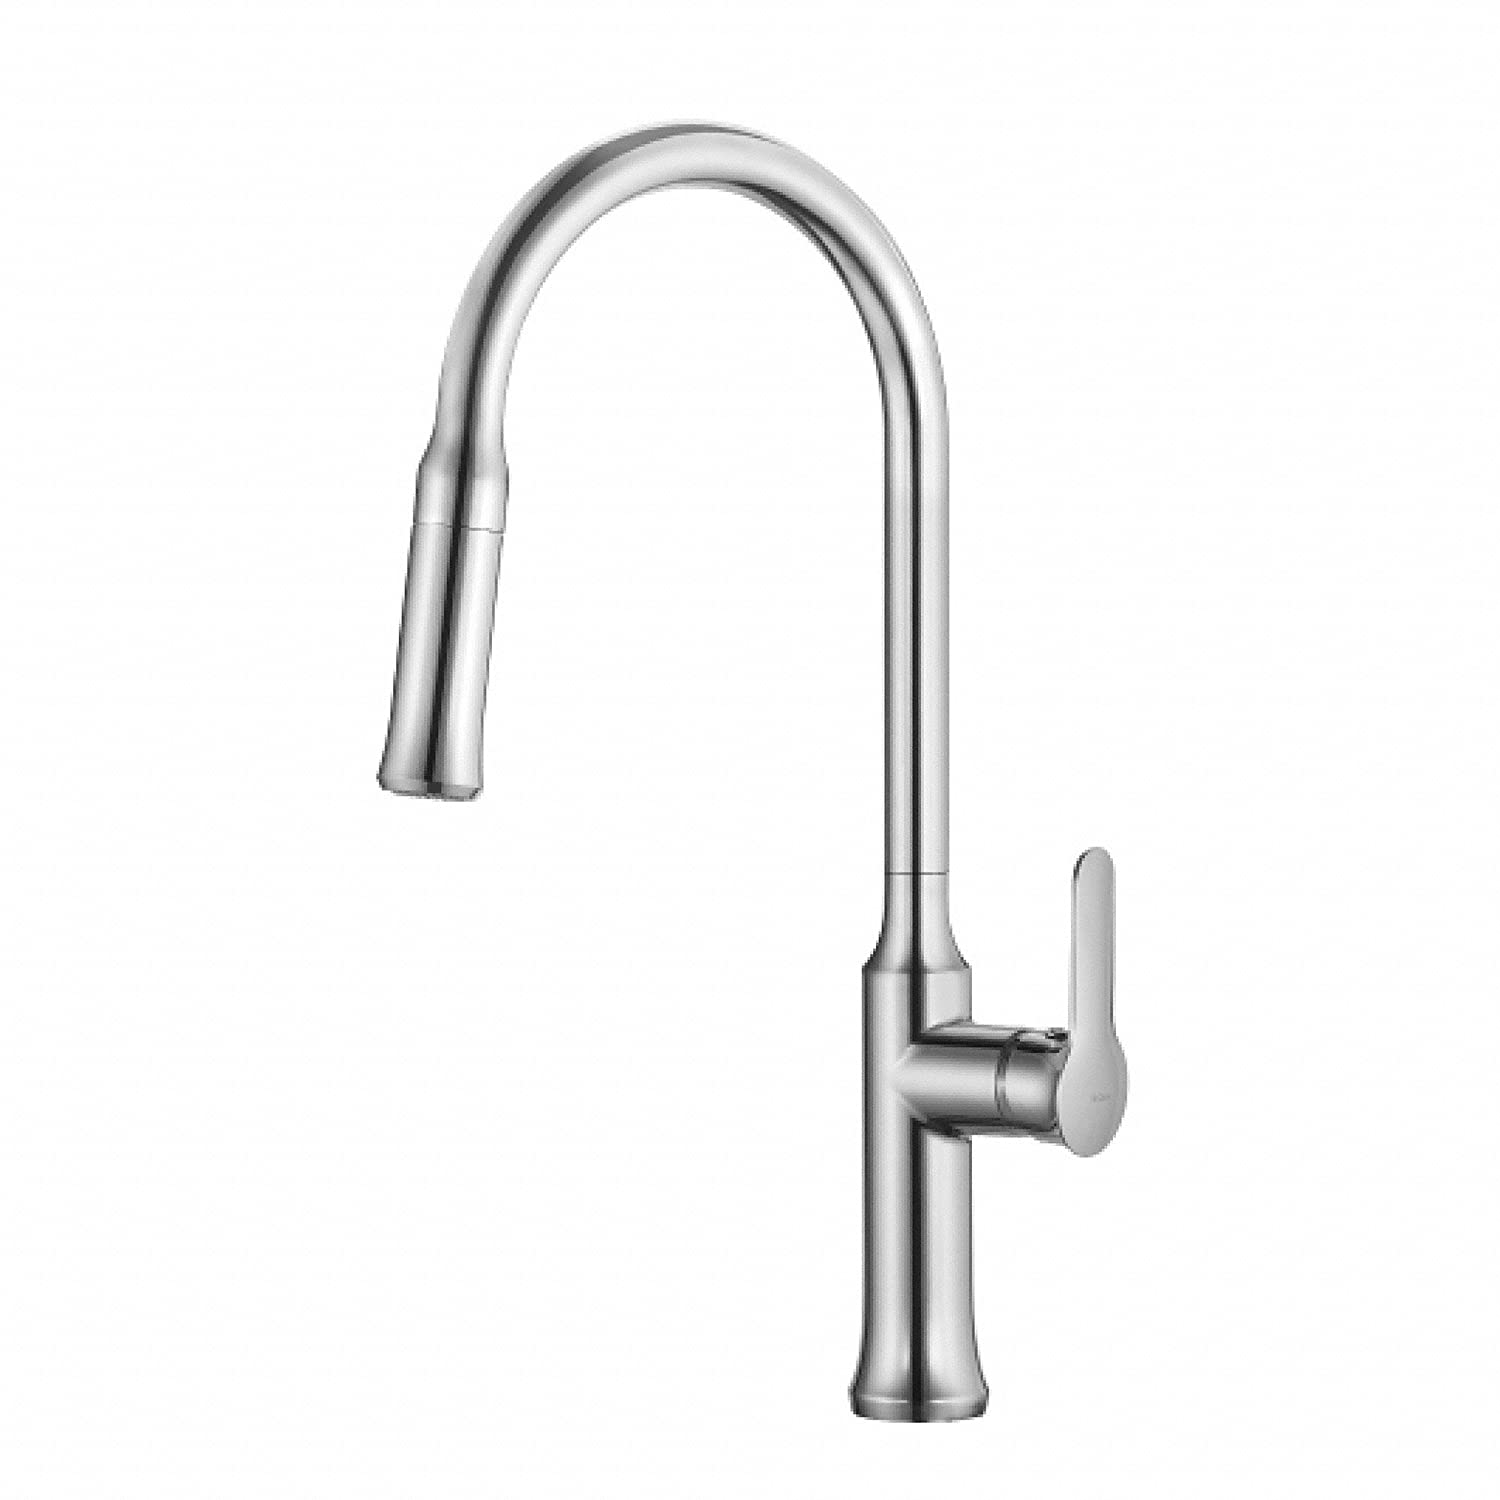 Kraus KPF-1630CH Nola Single Lever Pull-down Kitchen Faucet Chrome ...